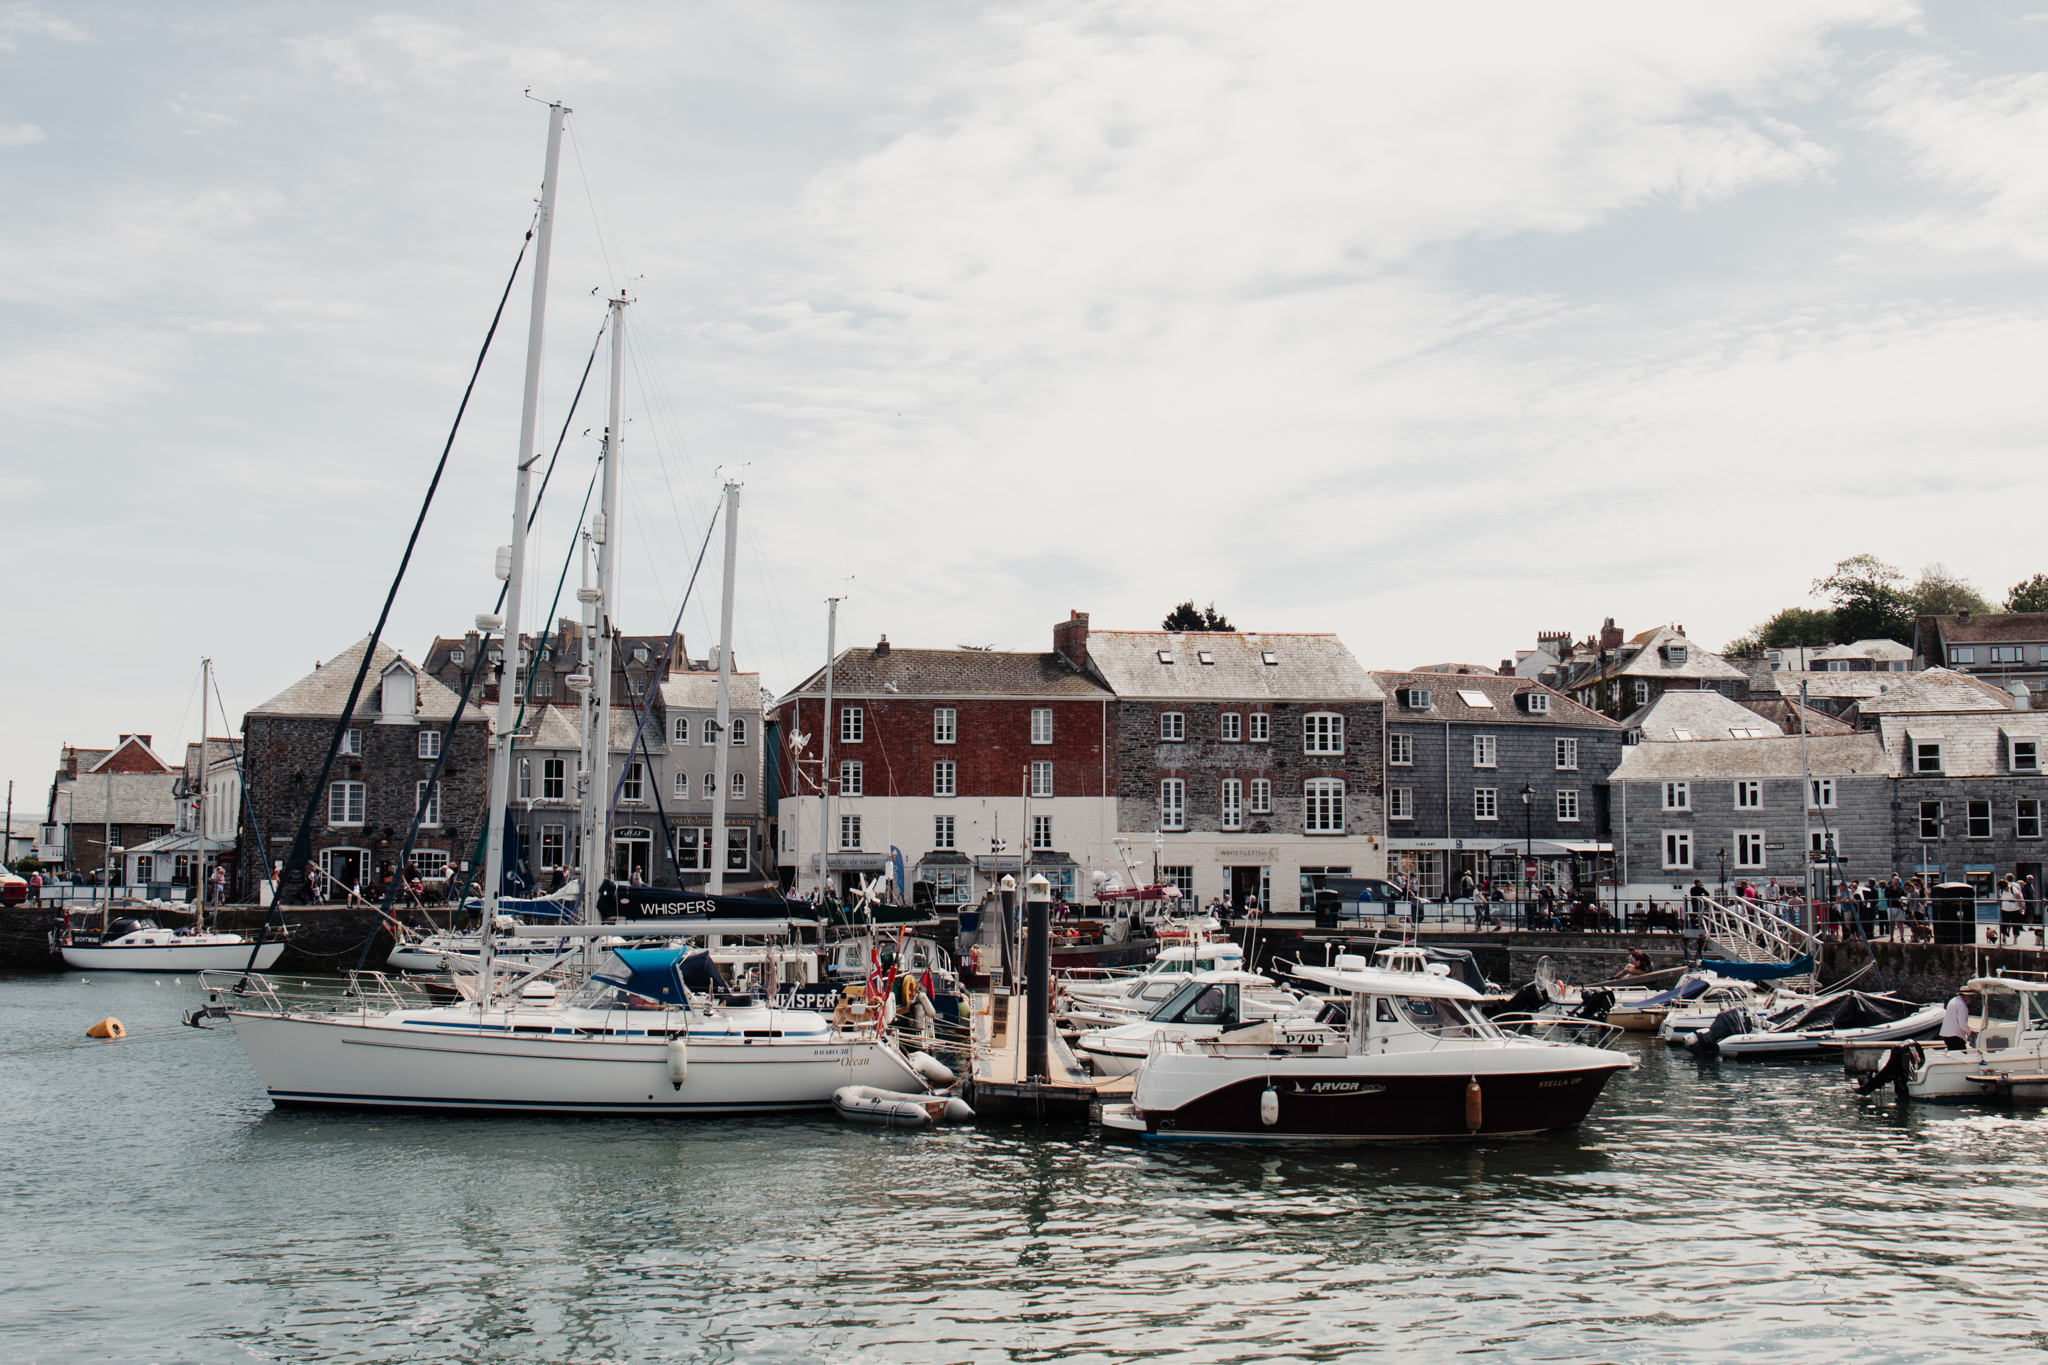 Padstow, Cornwall | Ciao Fabello